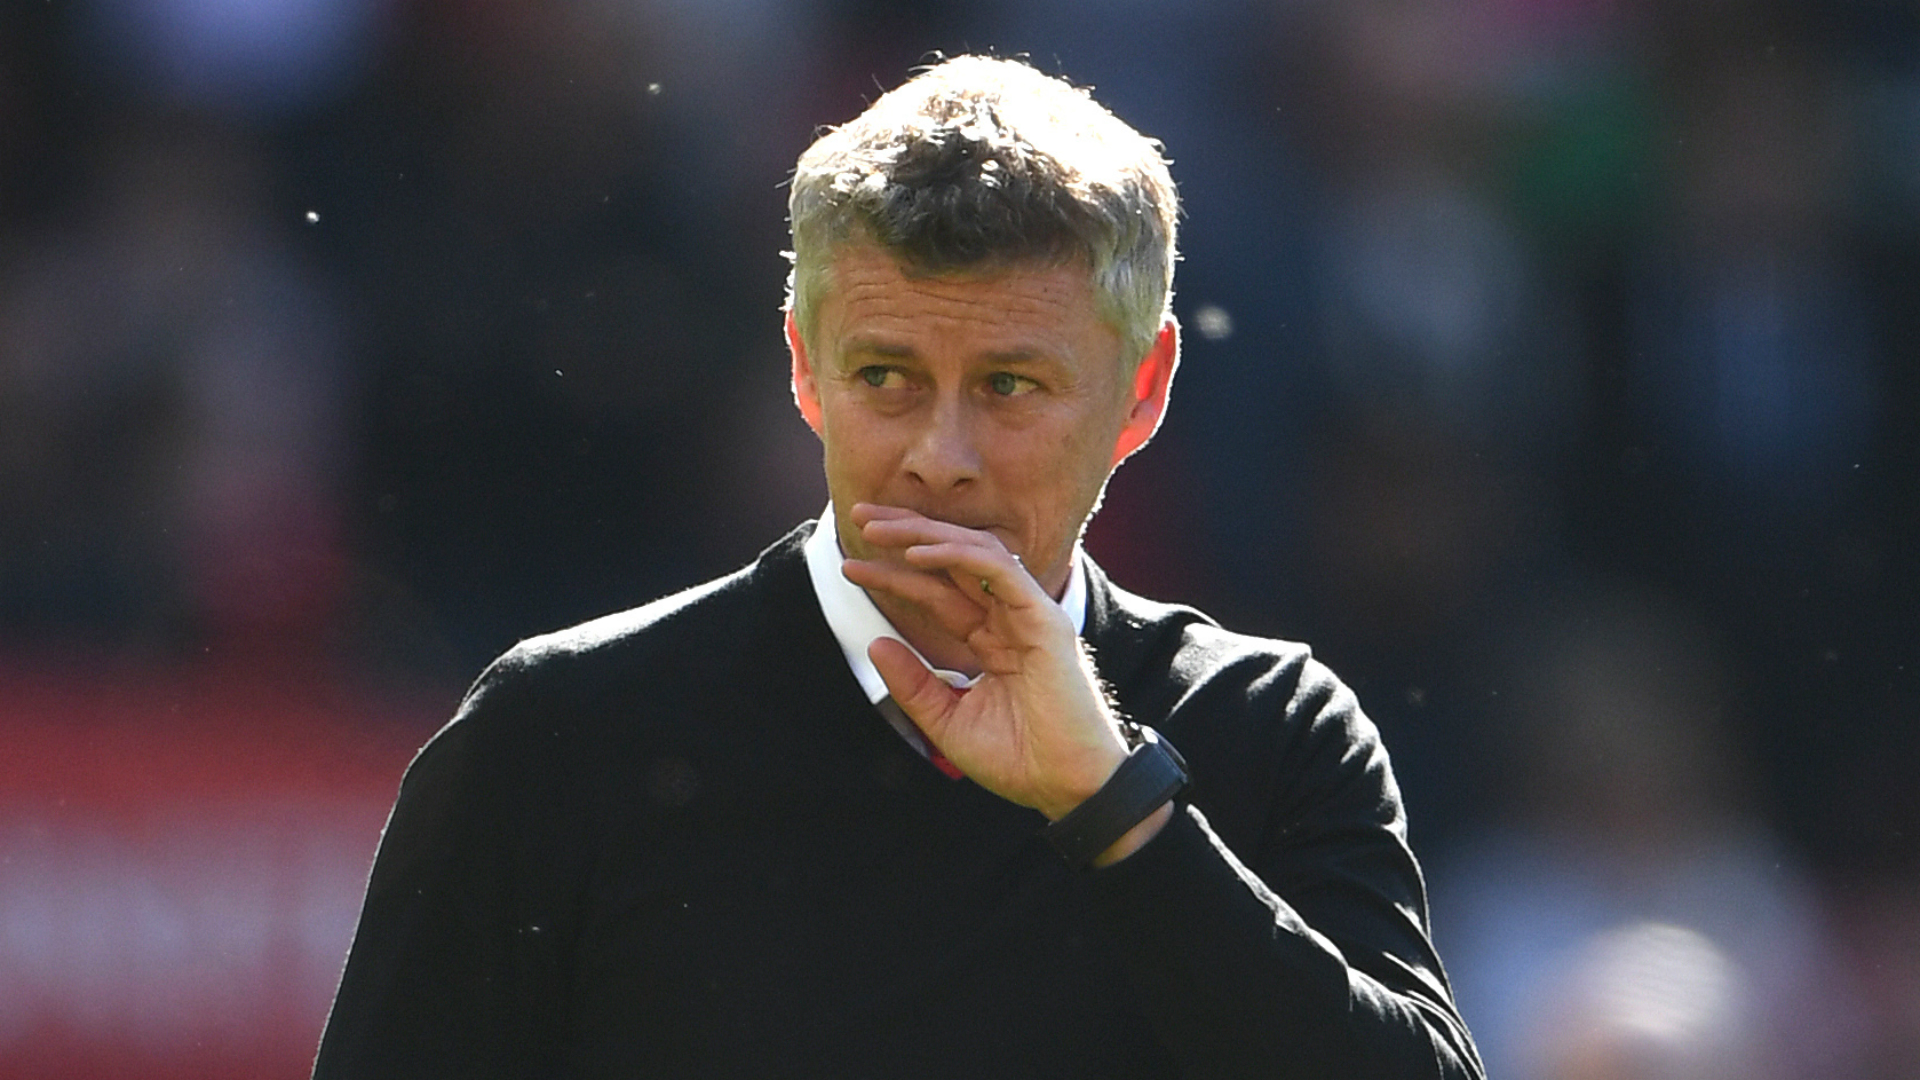 After a poor end to the Premier League season, Manchester United manager Ole Gunnar Solskjaer is planning additions to his squad.